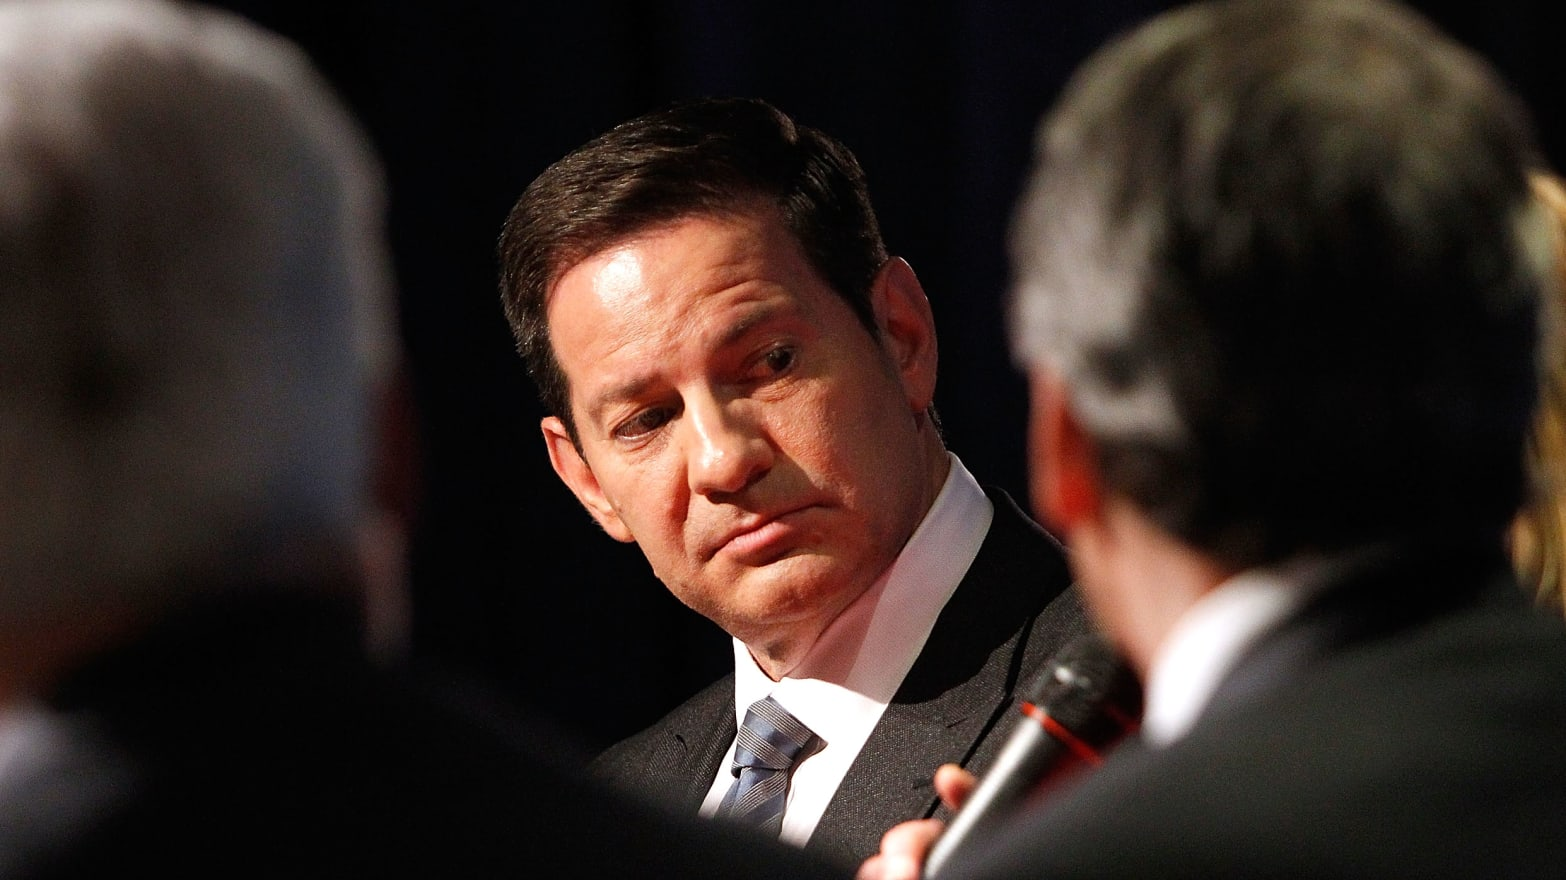 Disgraced Pundit Mark Halperin Signs Deal to Publish New Political Book